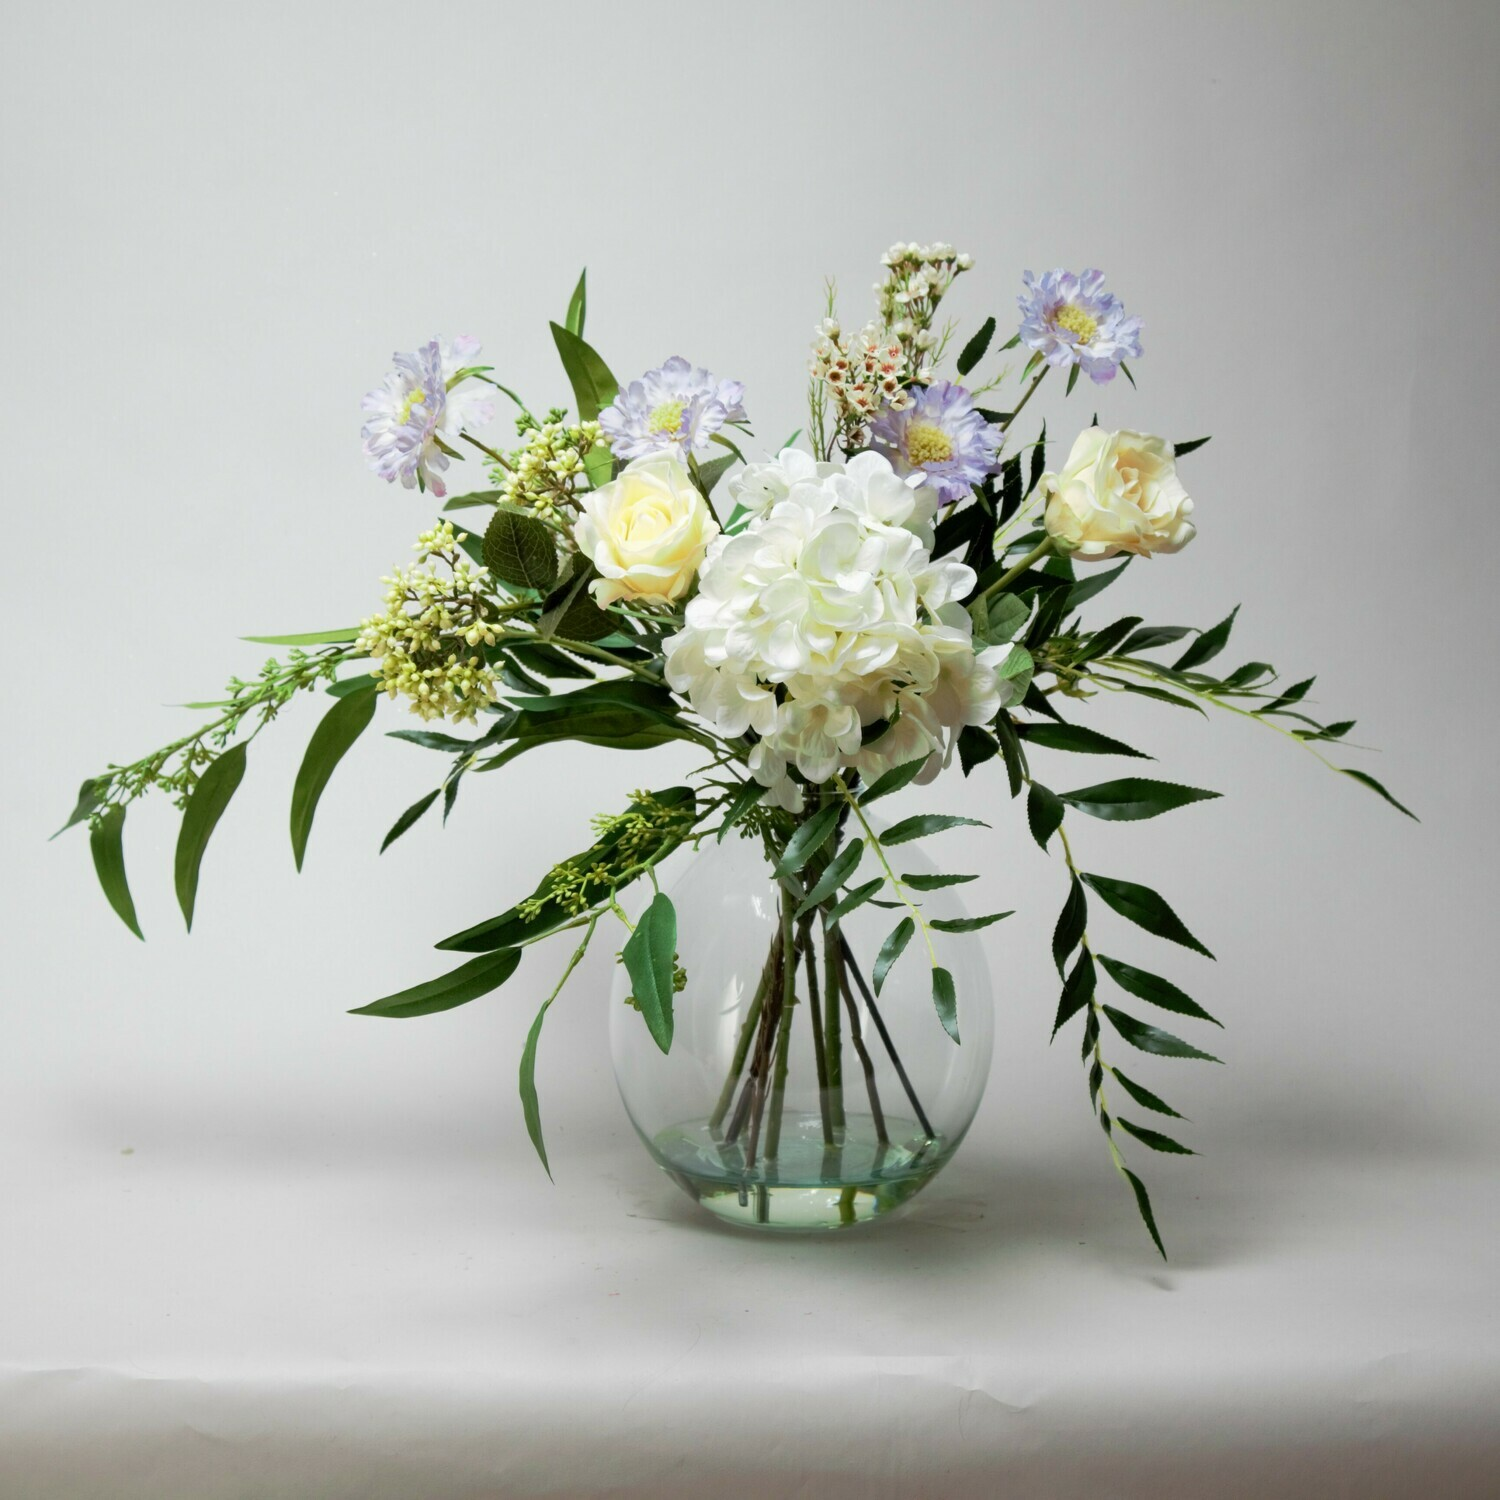 Hydrangea, Rose and Scabiosa Mix with Wild Foliage in an Oval Vase